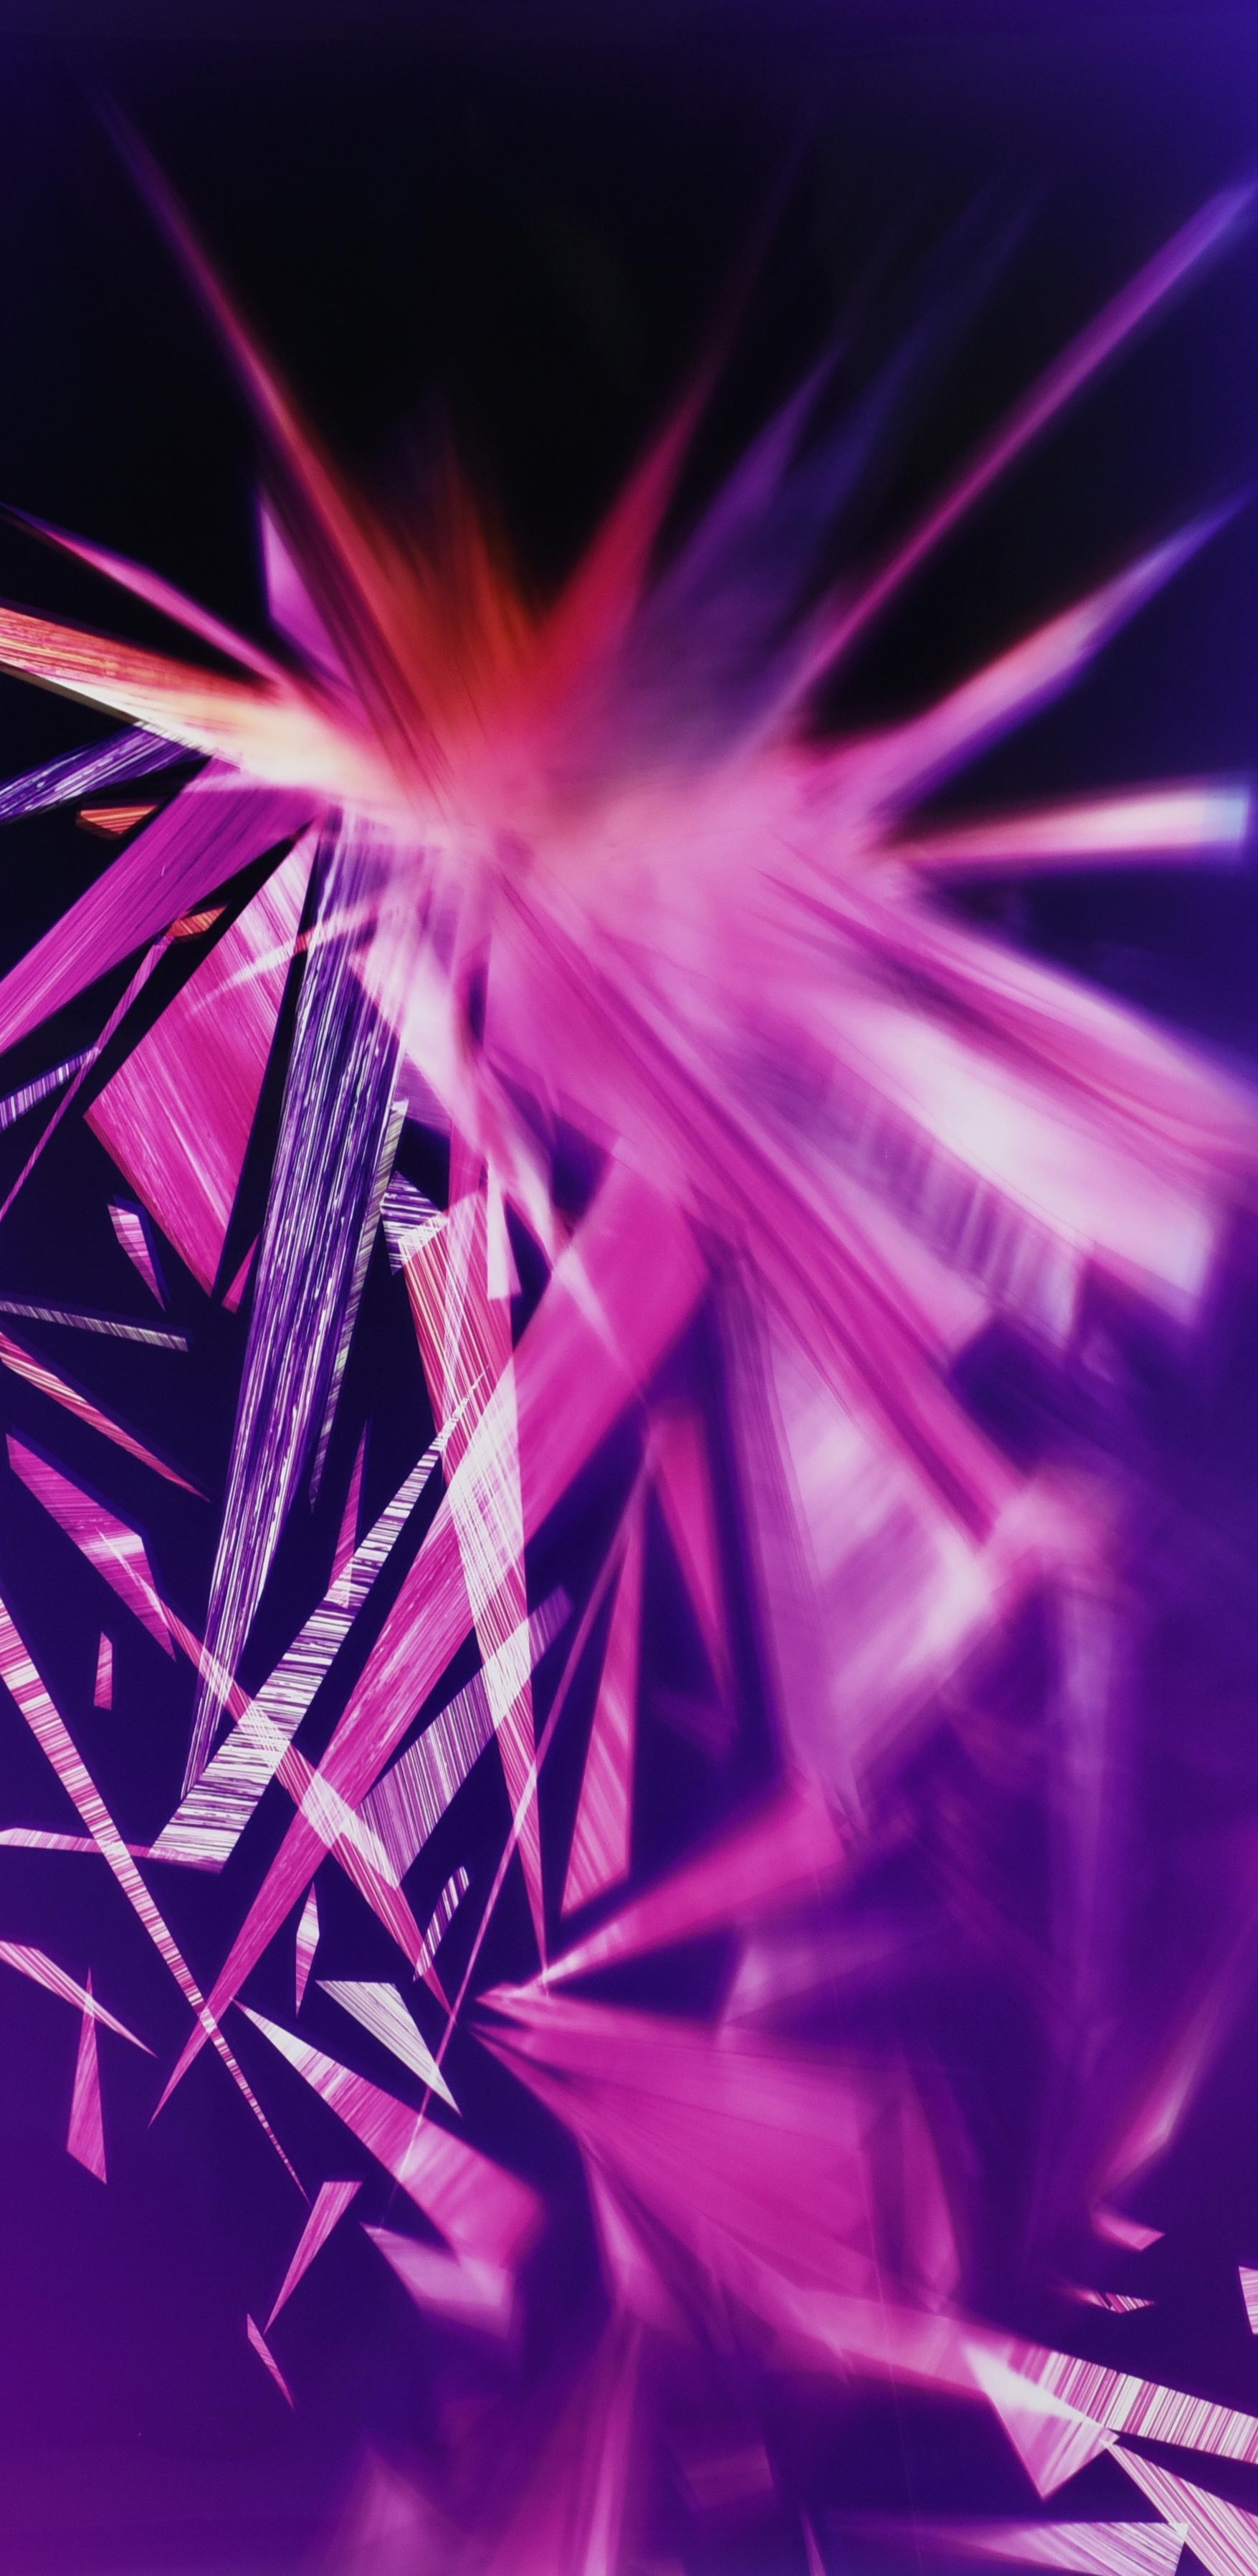 close-up detail of color photogram titled: Reciprocal Ablation from the series Precariously Bright